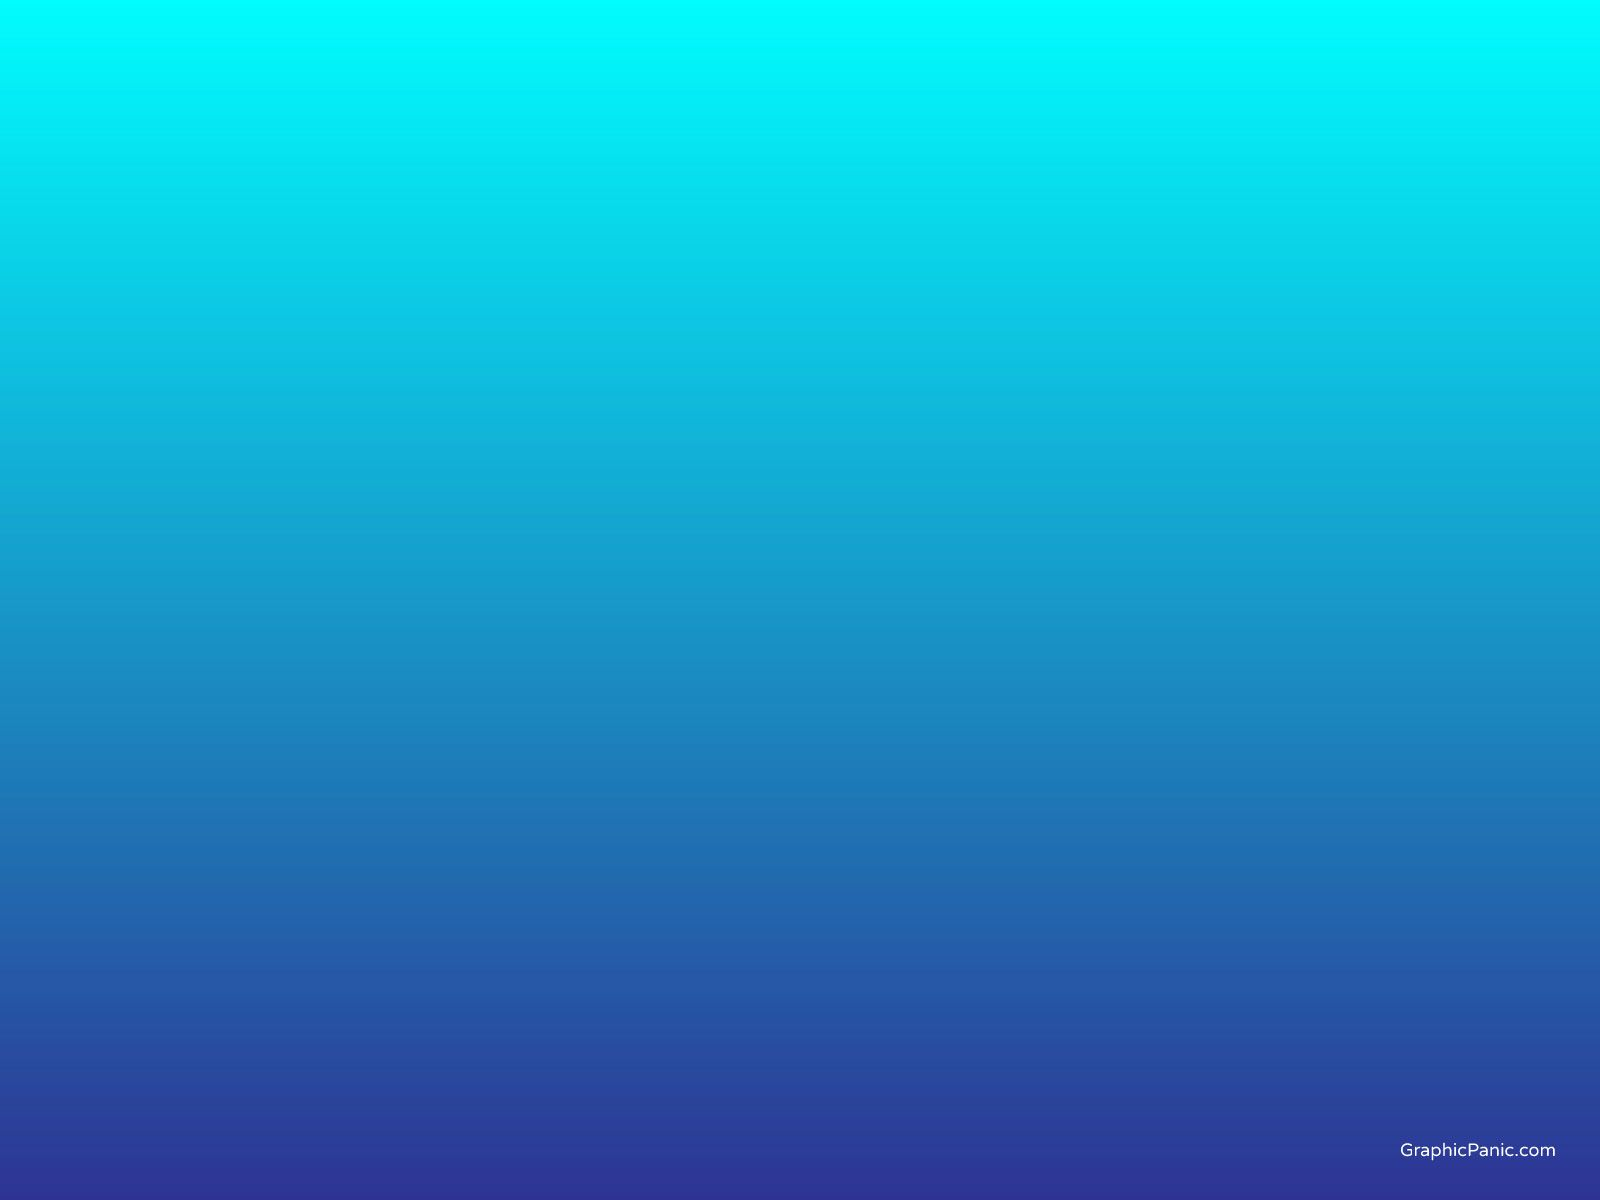 blue gradient background graphic panic powerpoint